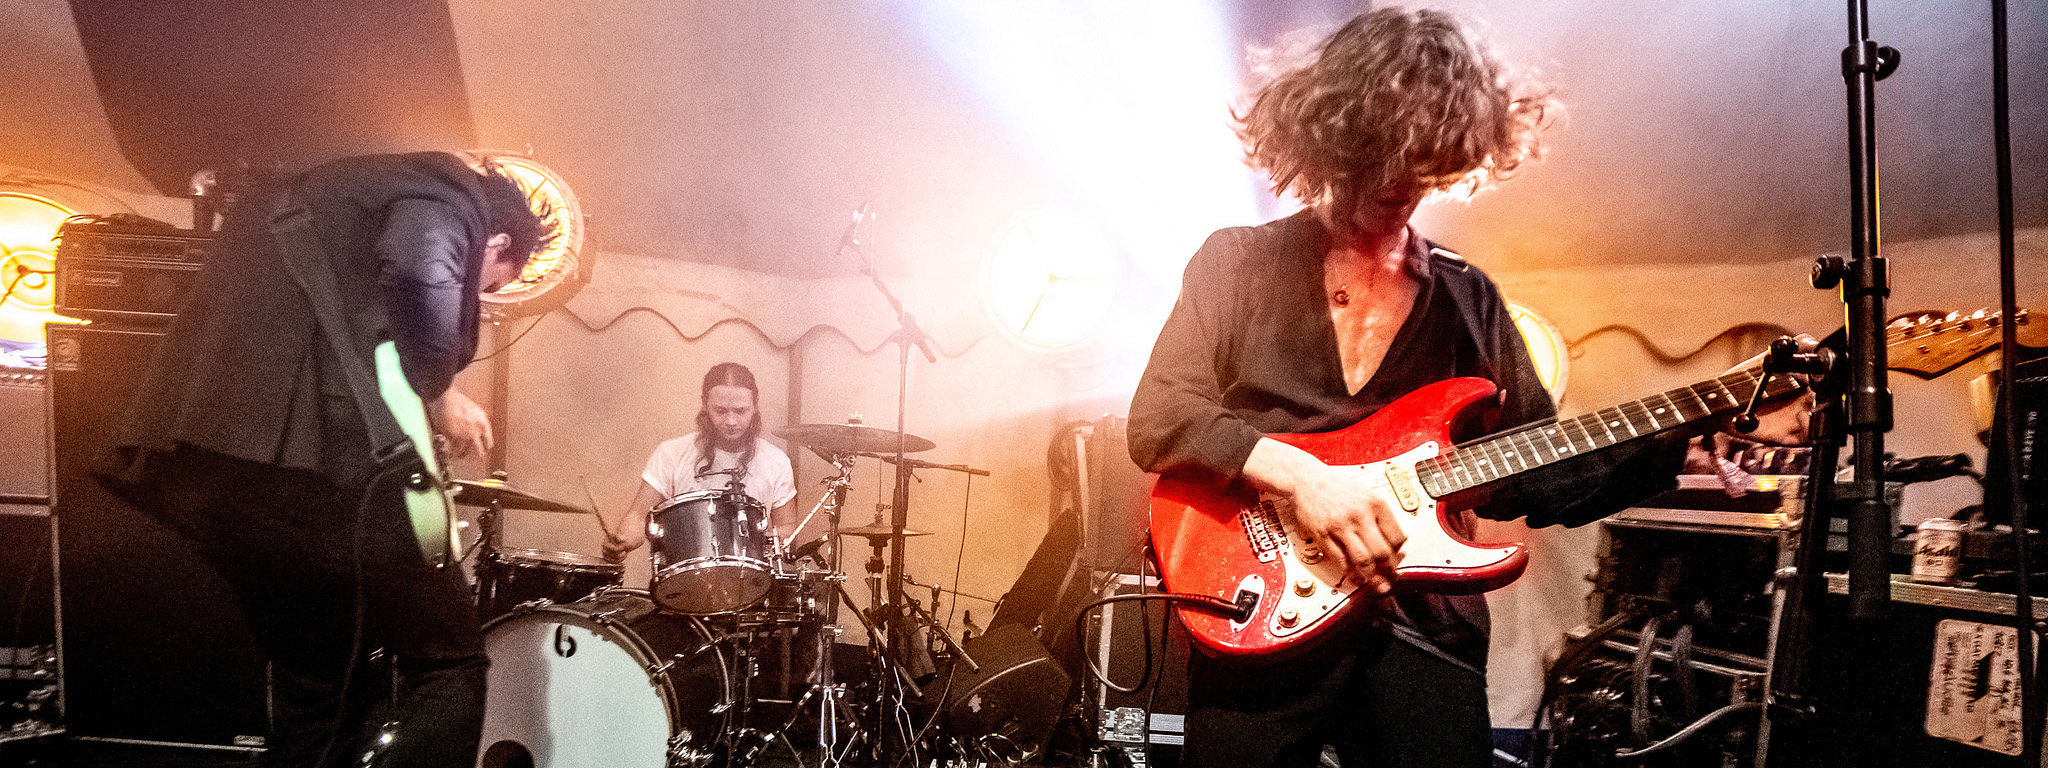 The Blinders at Festival No.6